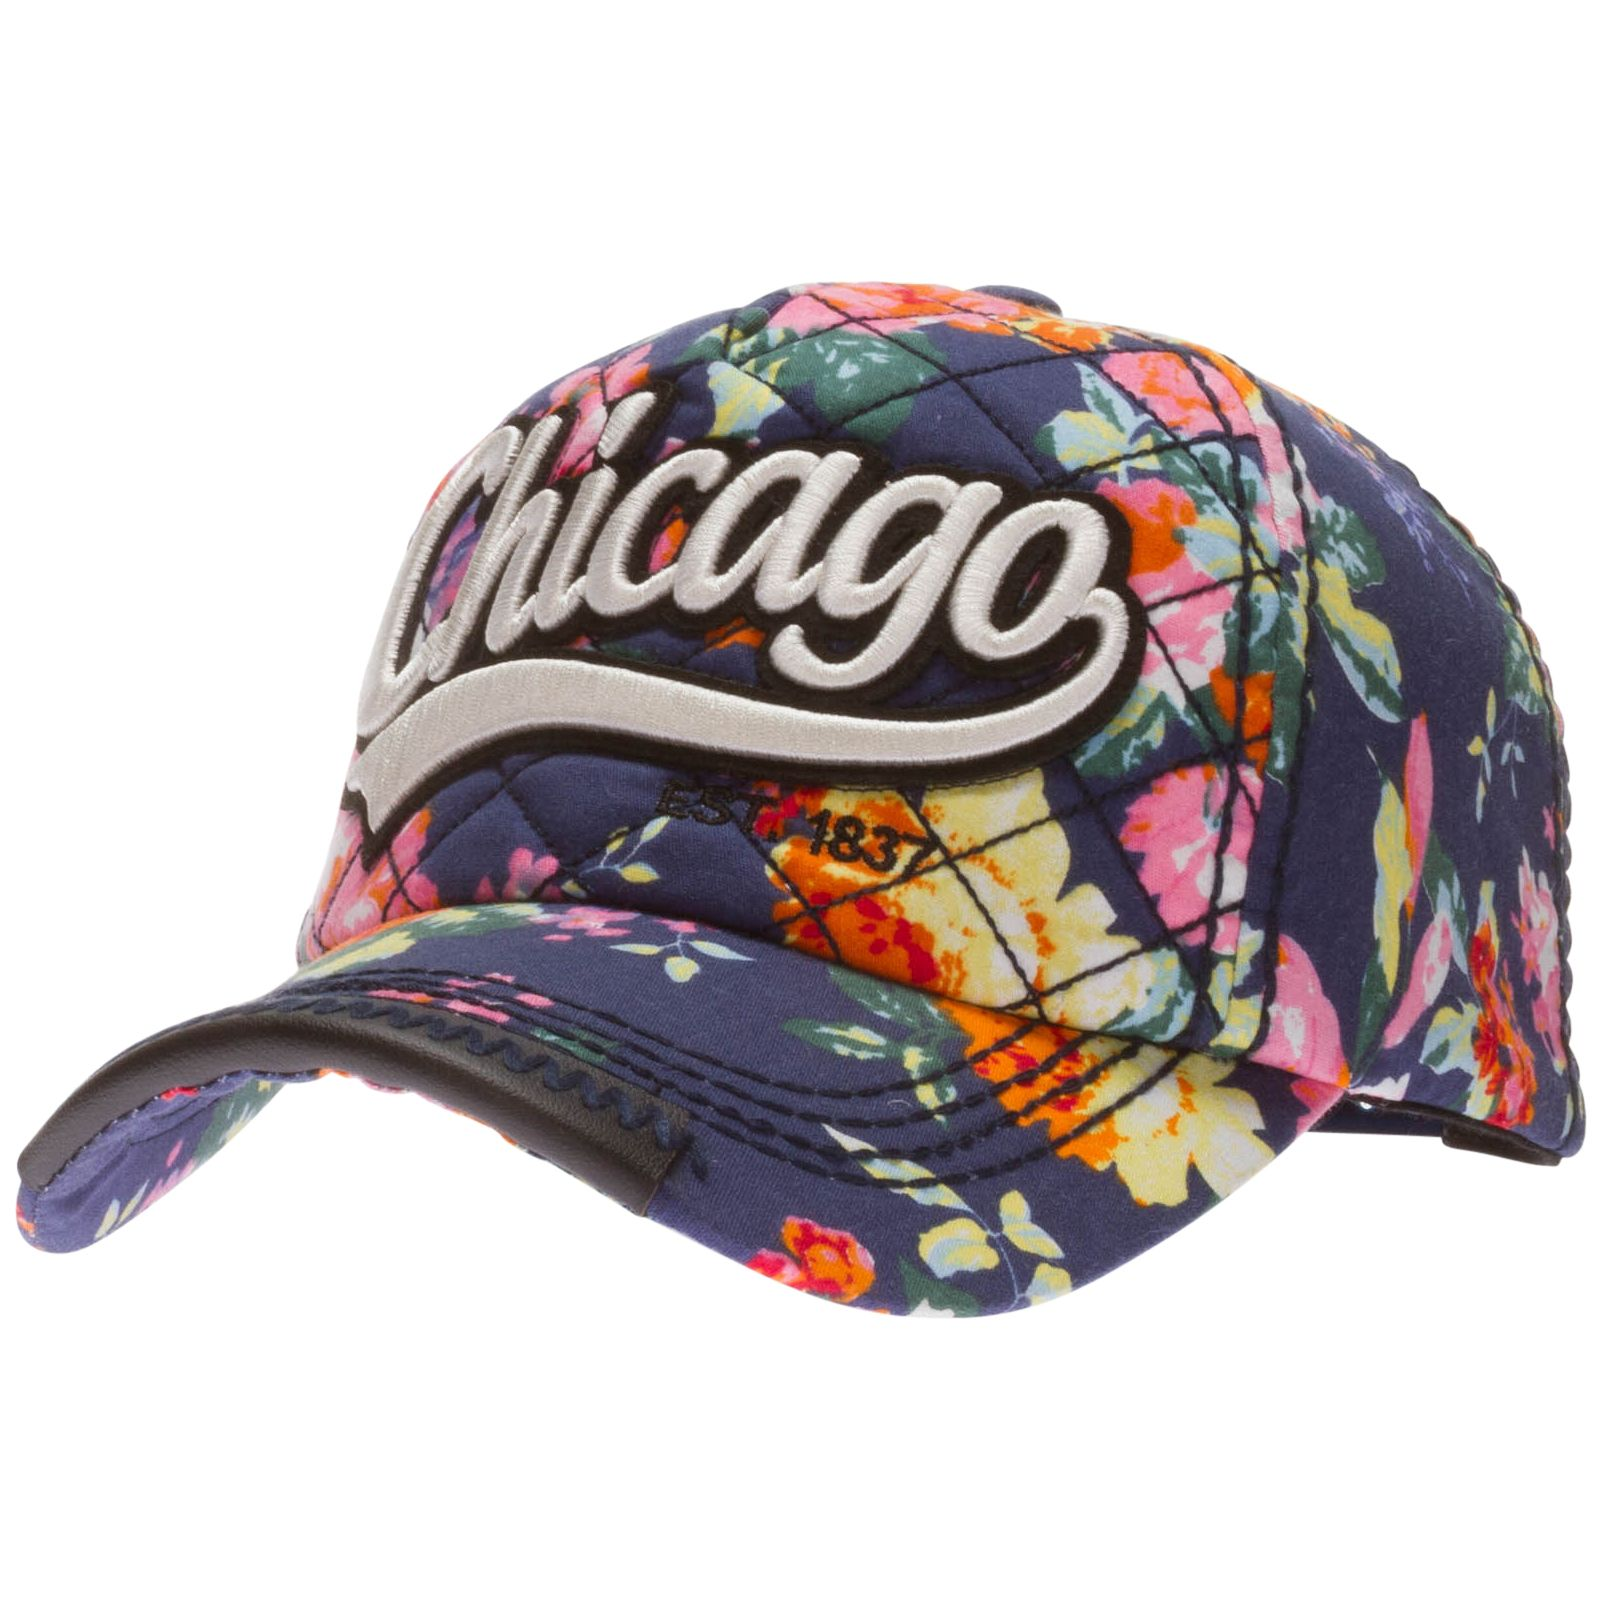 56e61599e3f Chicago Navy Floral Adjustable Hat by Robin Ruth  Chicago  ChiTown   WindyCity